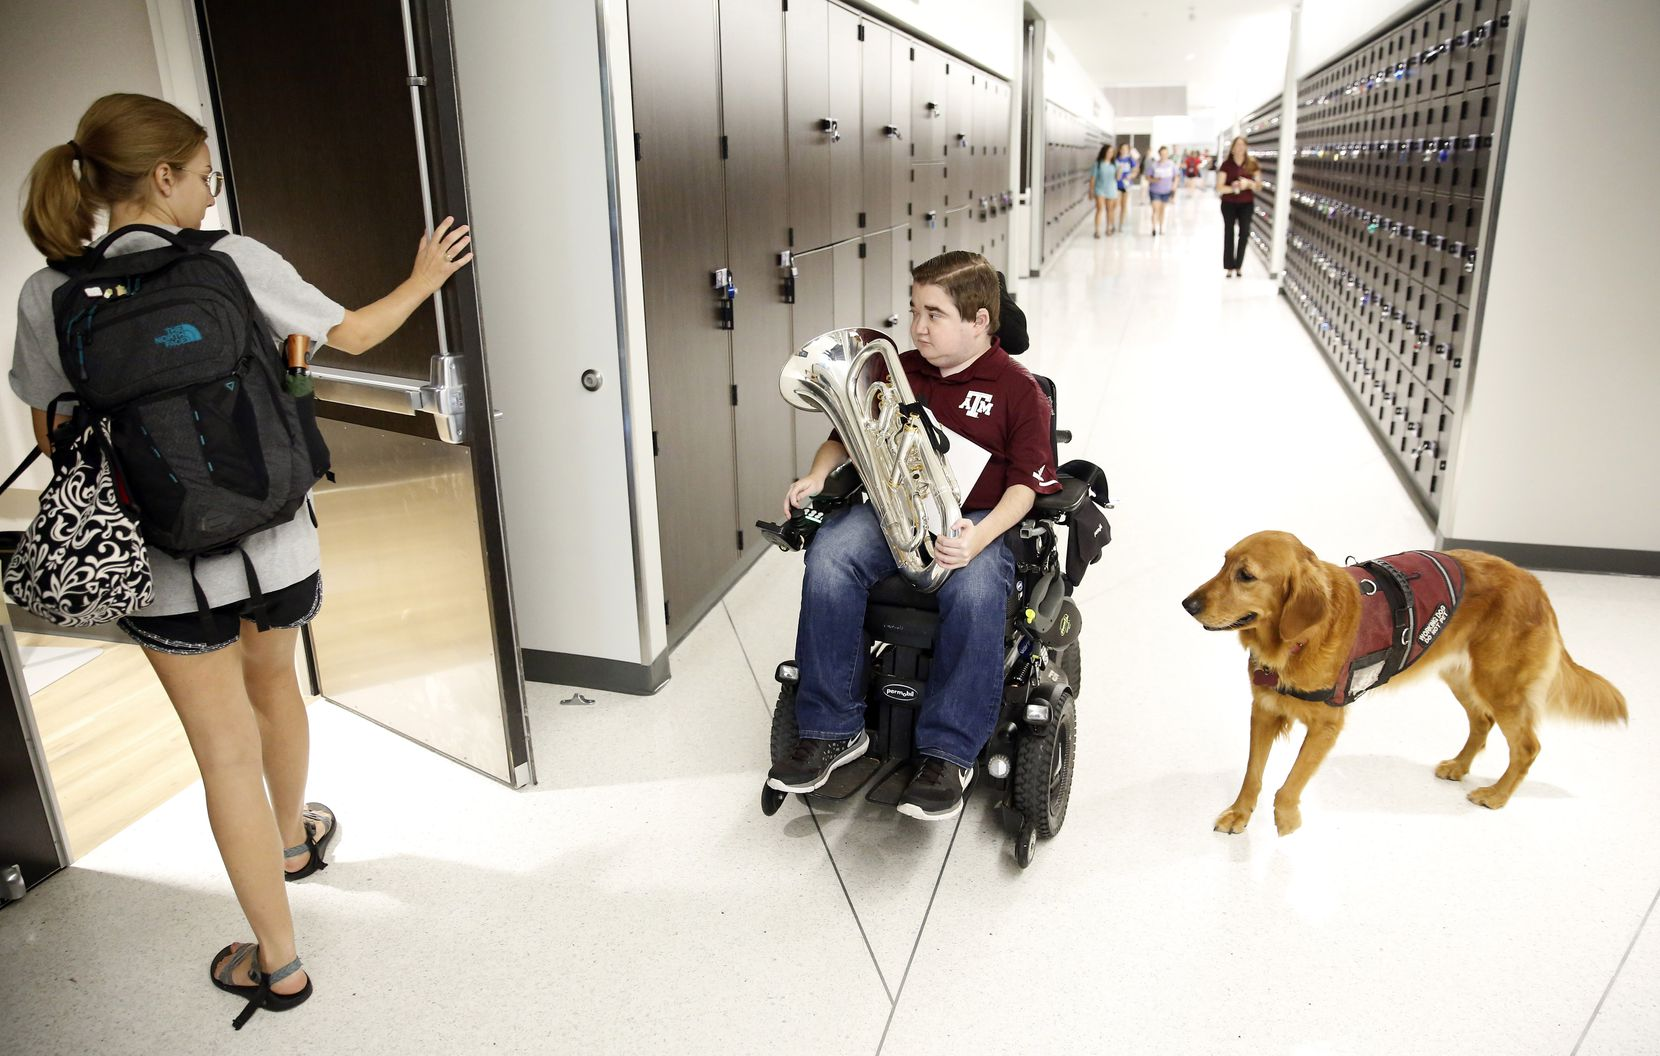 Texas A&M graduate student Kyle Cox, who has Duchenne muscular dystrophy, and his golden retriever service dog head to symphonic band rehearsal at the Music Activities Center on the Texas A&M campus in College Station on Sept. 11, 2019.